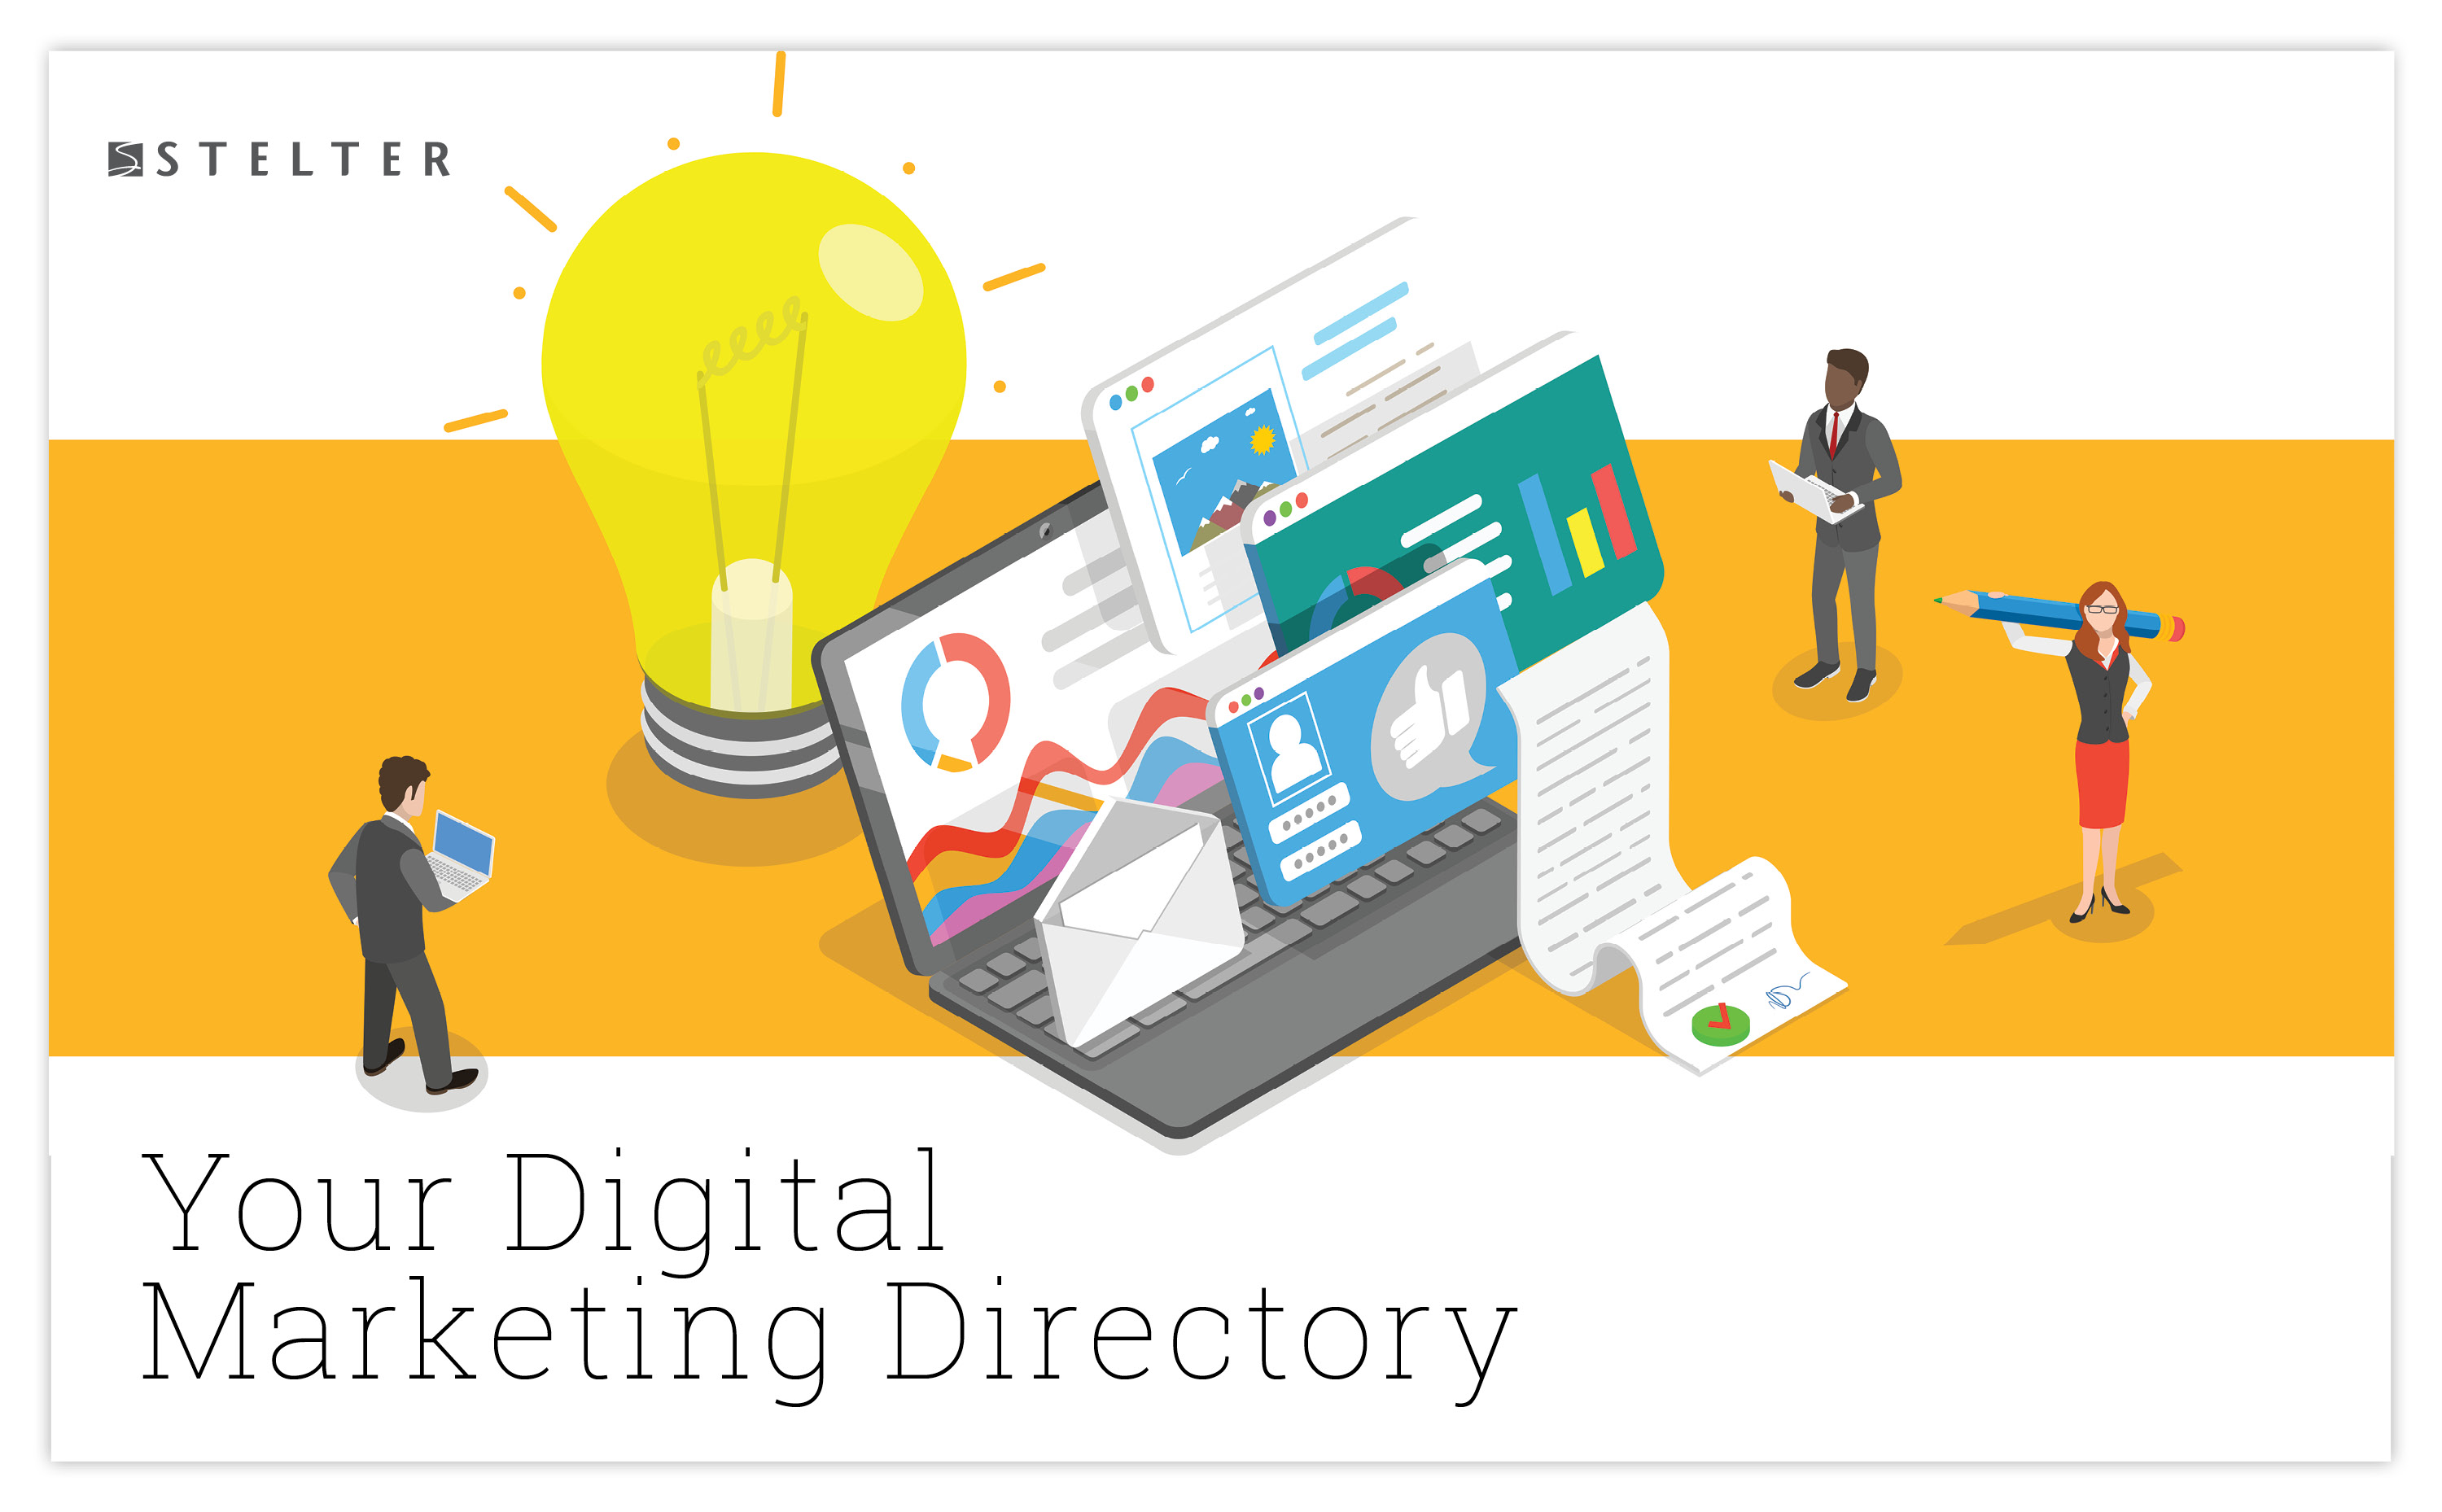 Your Digital Marketing Directory